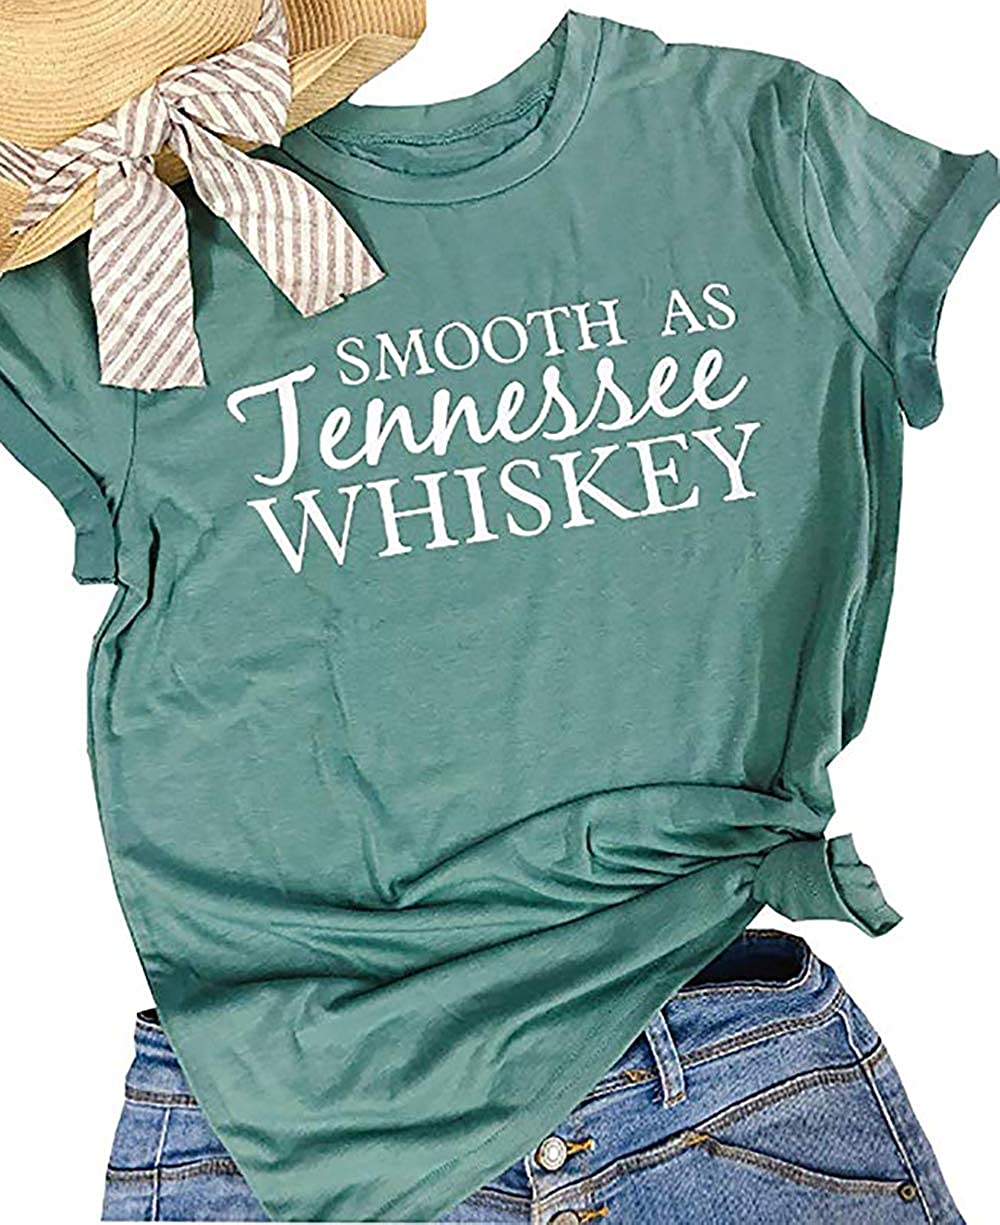 Smooth as Tennessee Whiskey T Shirt Women Drinking Graphic Cute Funny Shirt Tees Letter Print ummer Casual Shirts Tops